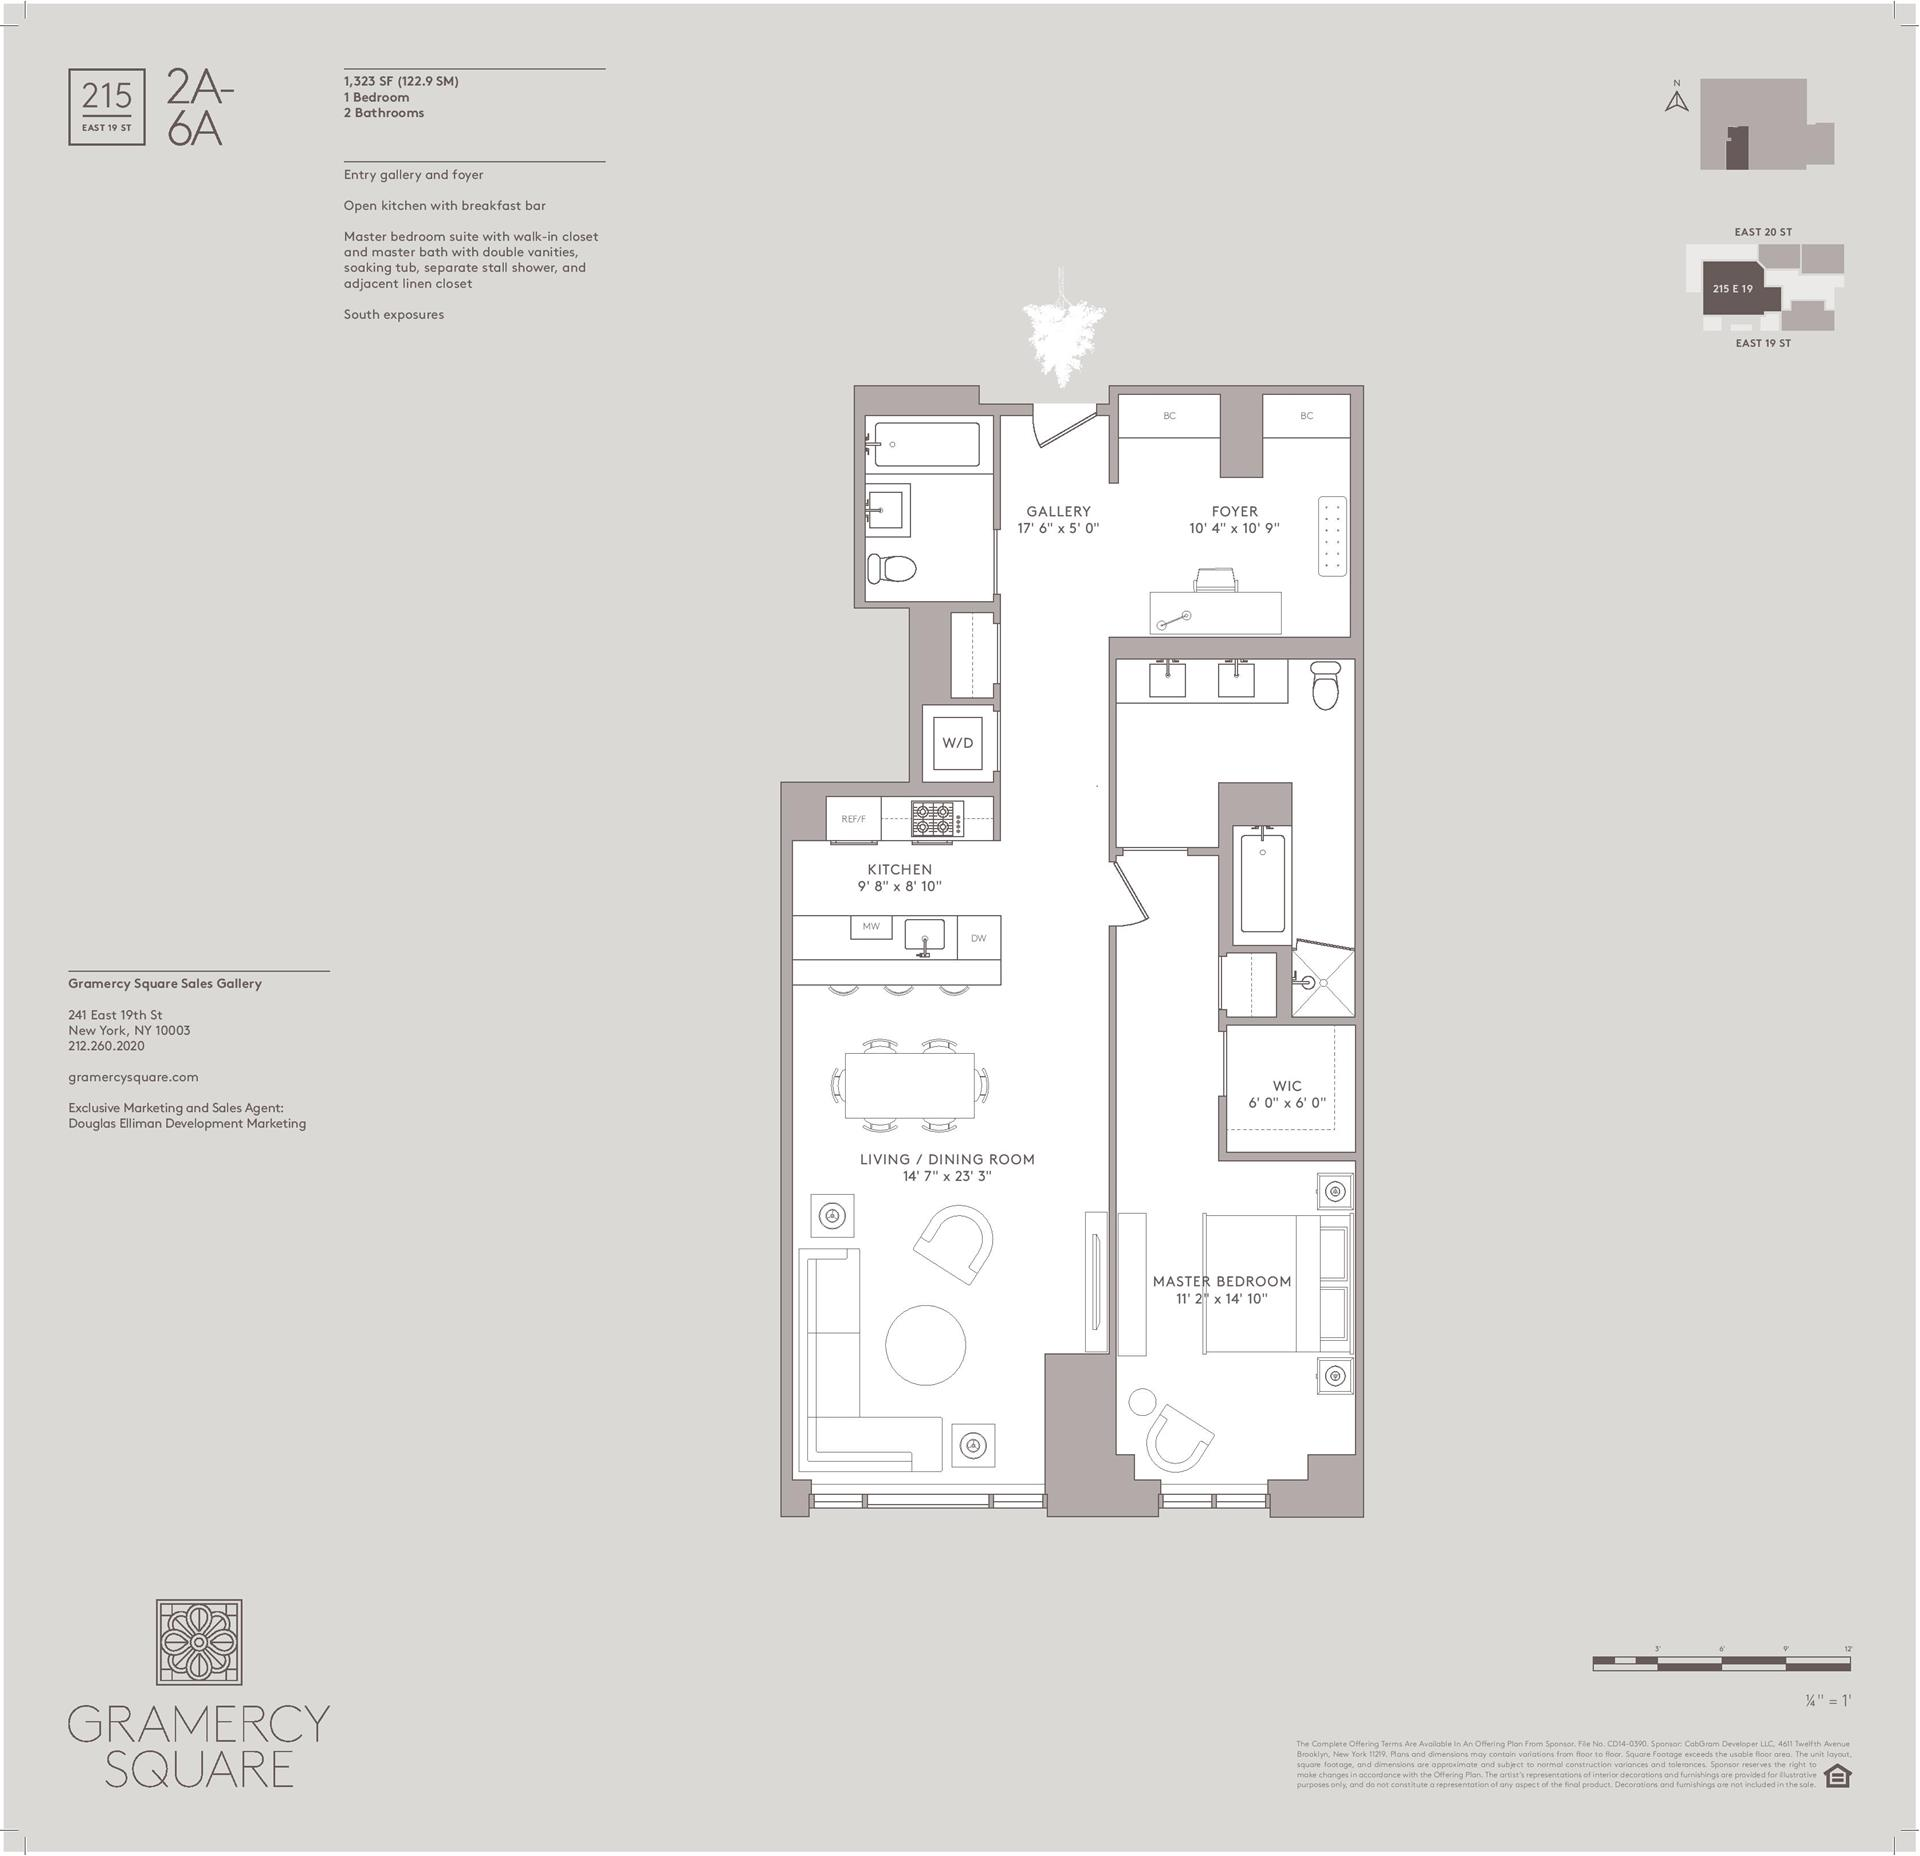 Floor plan of Gramercy Square, 215 East 19th St, 5A - Gramercy - Union Square, New York